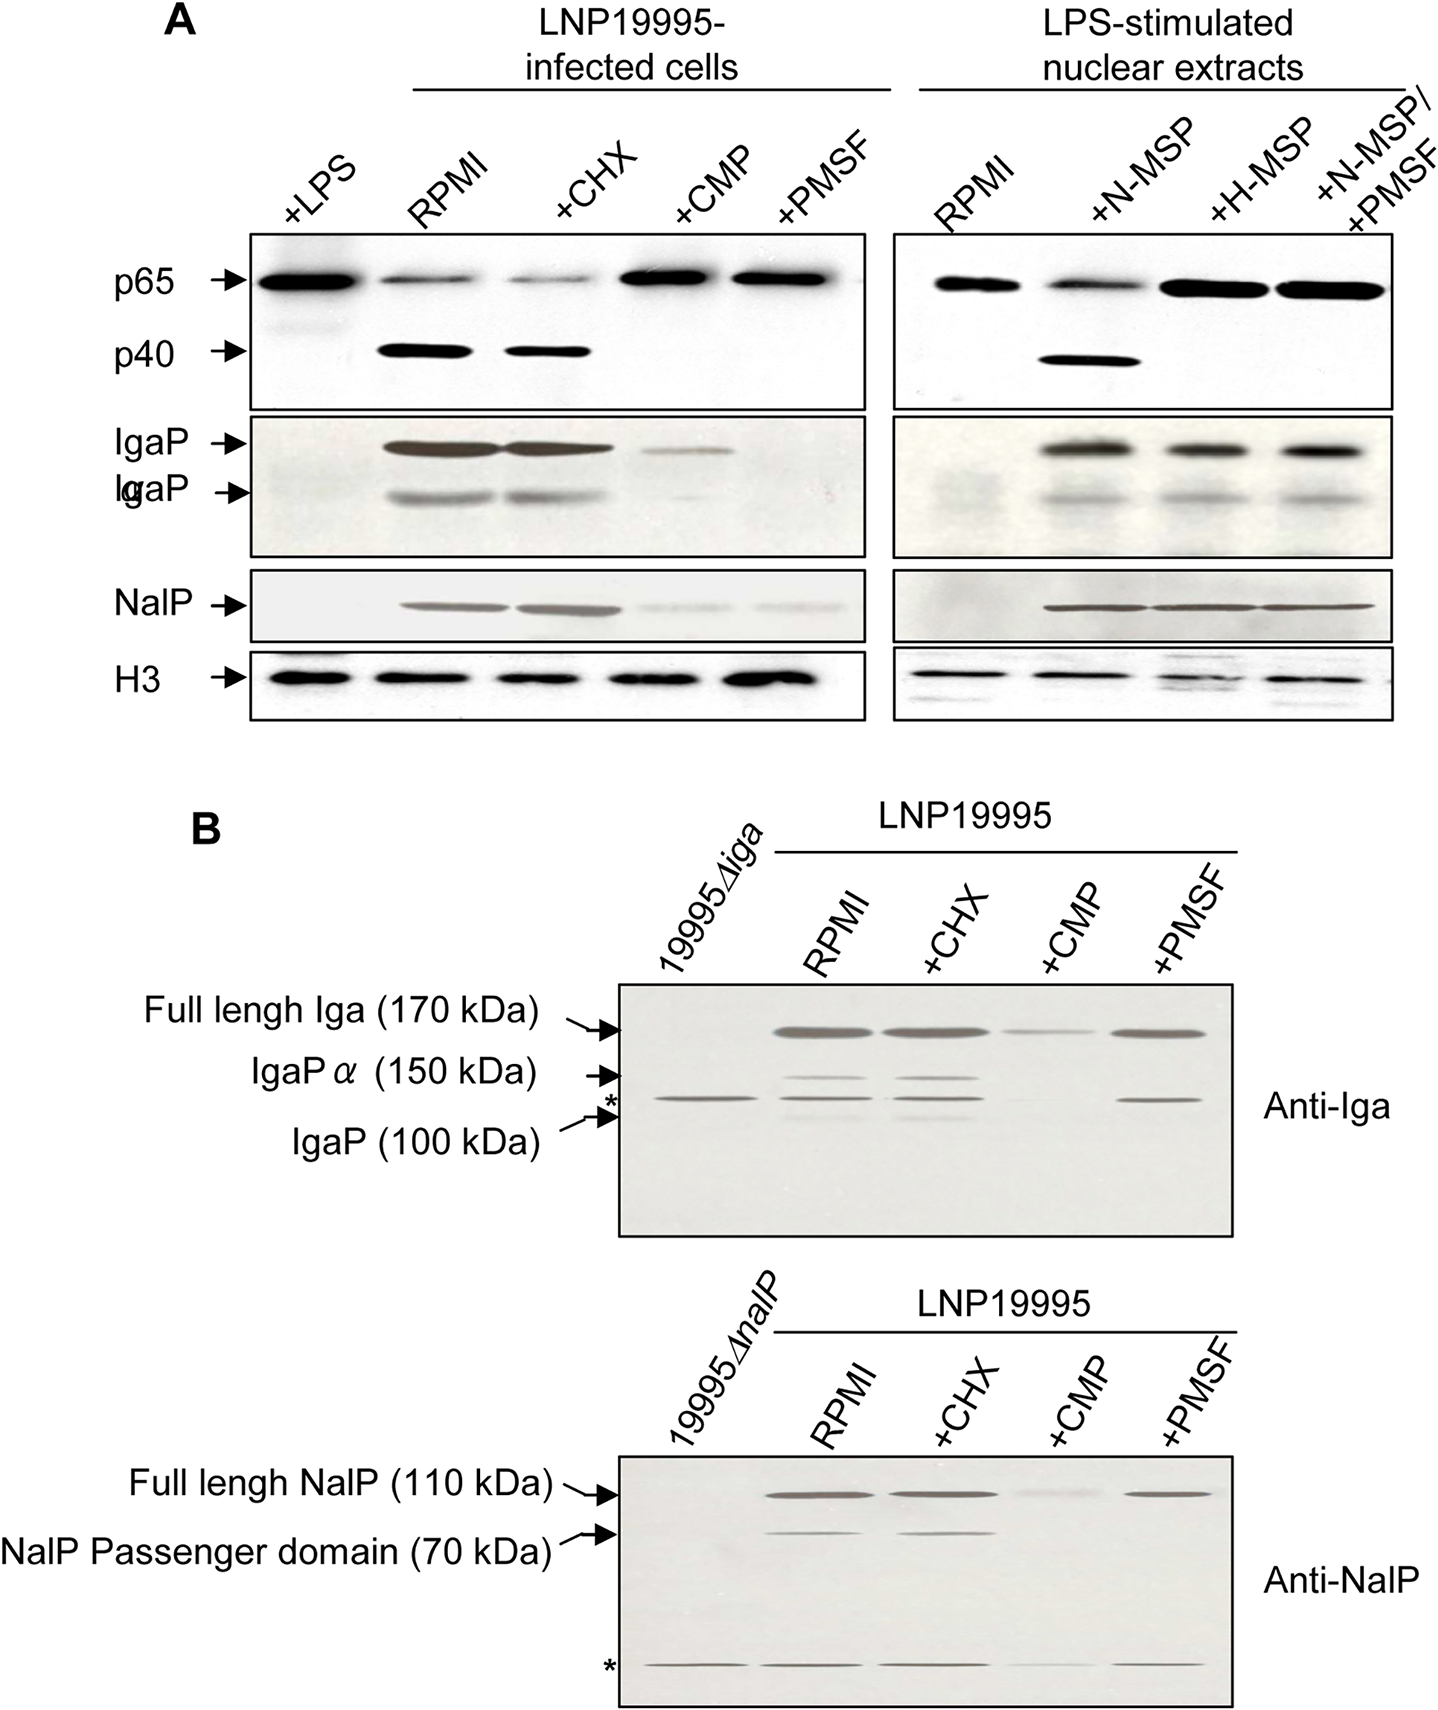 Nuclear cleavage of p65/RelA is carried out by a ST-11 meningococcal secreted serine protease.